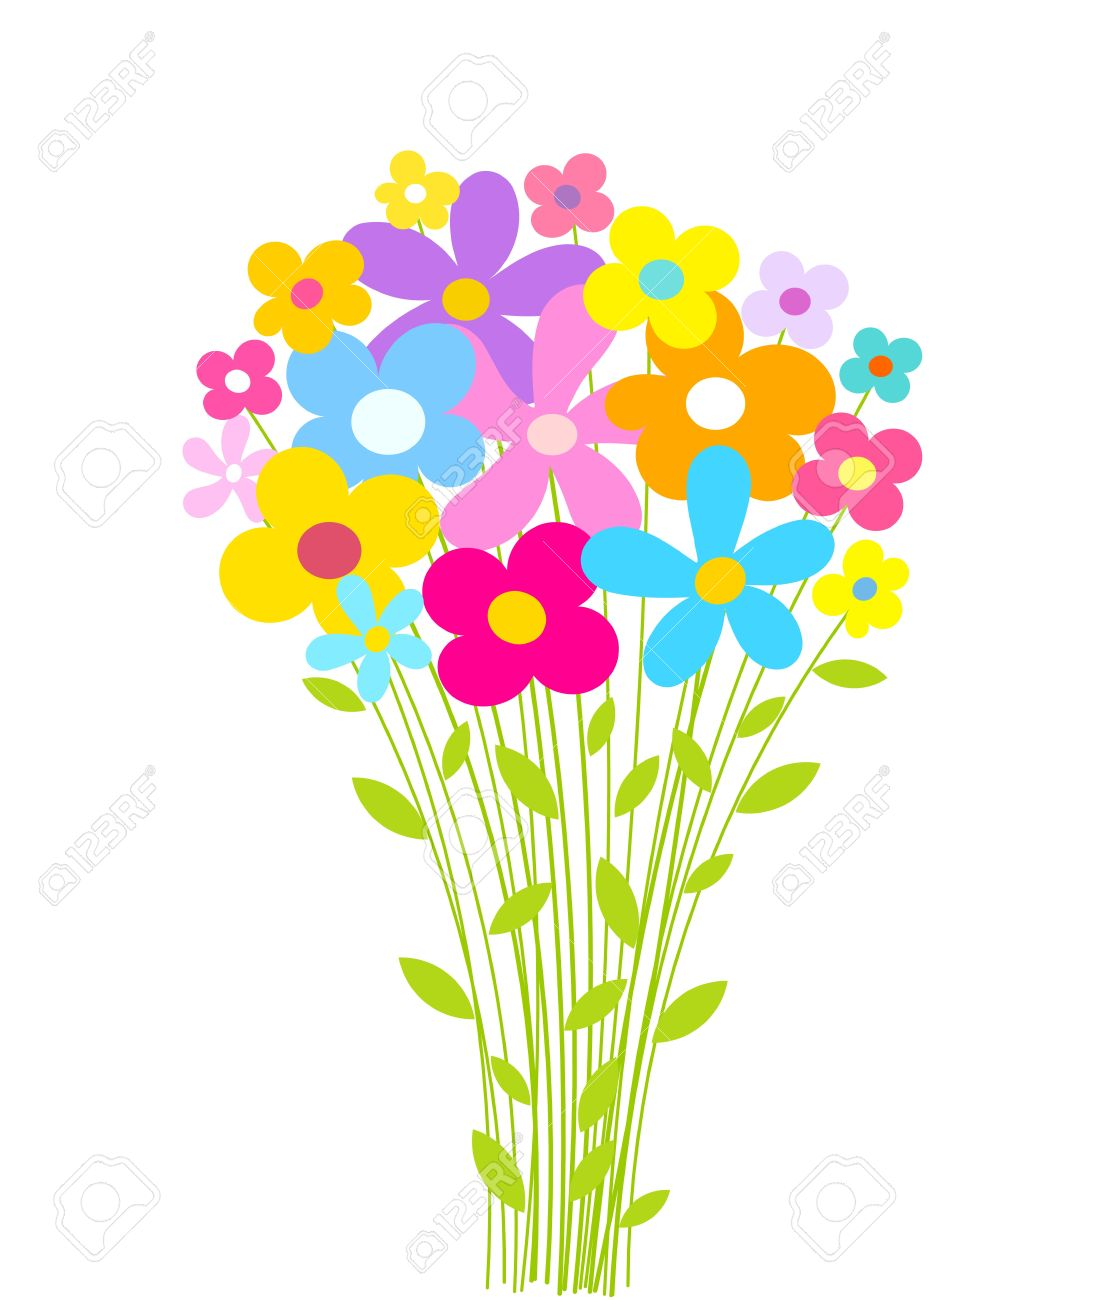 Free Flower Bouquet Pictures. Background Bouquet Flower. Free Flower ...